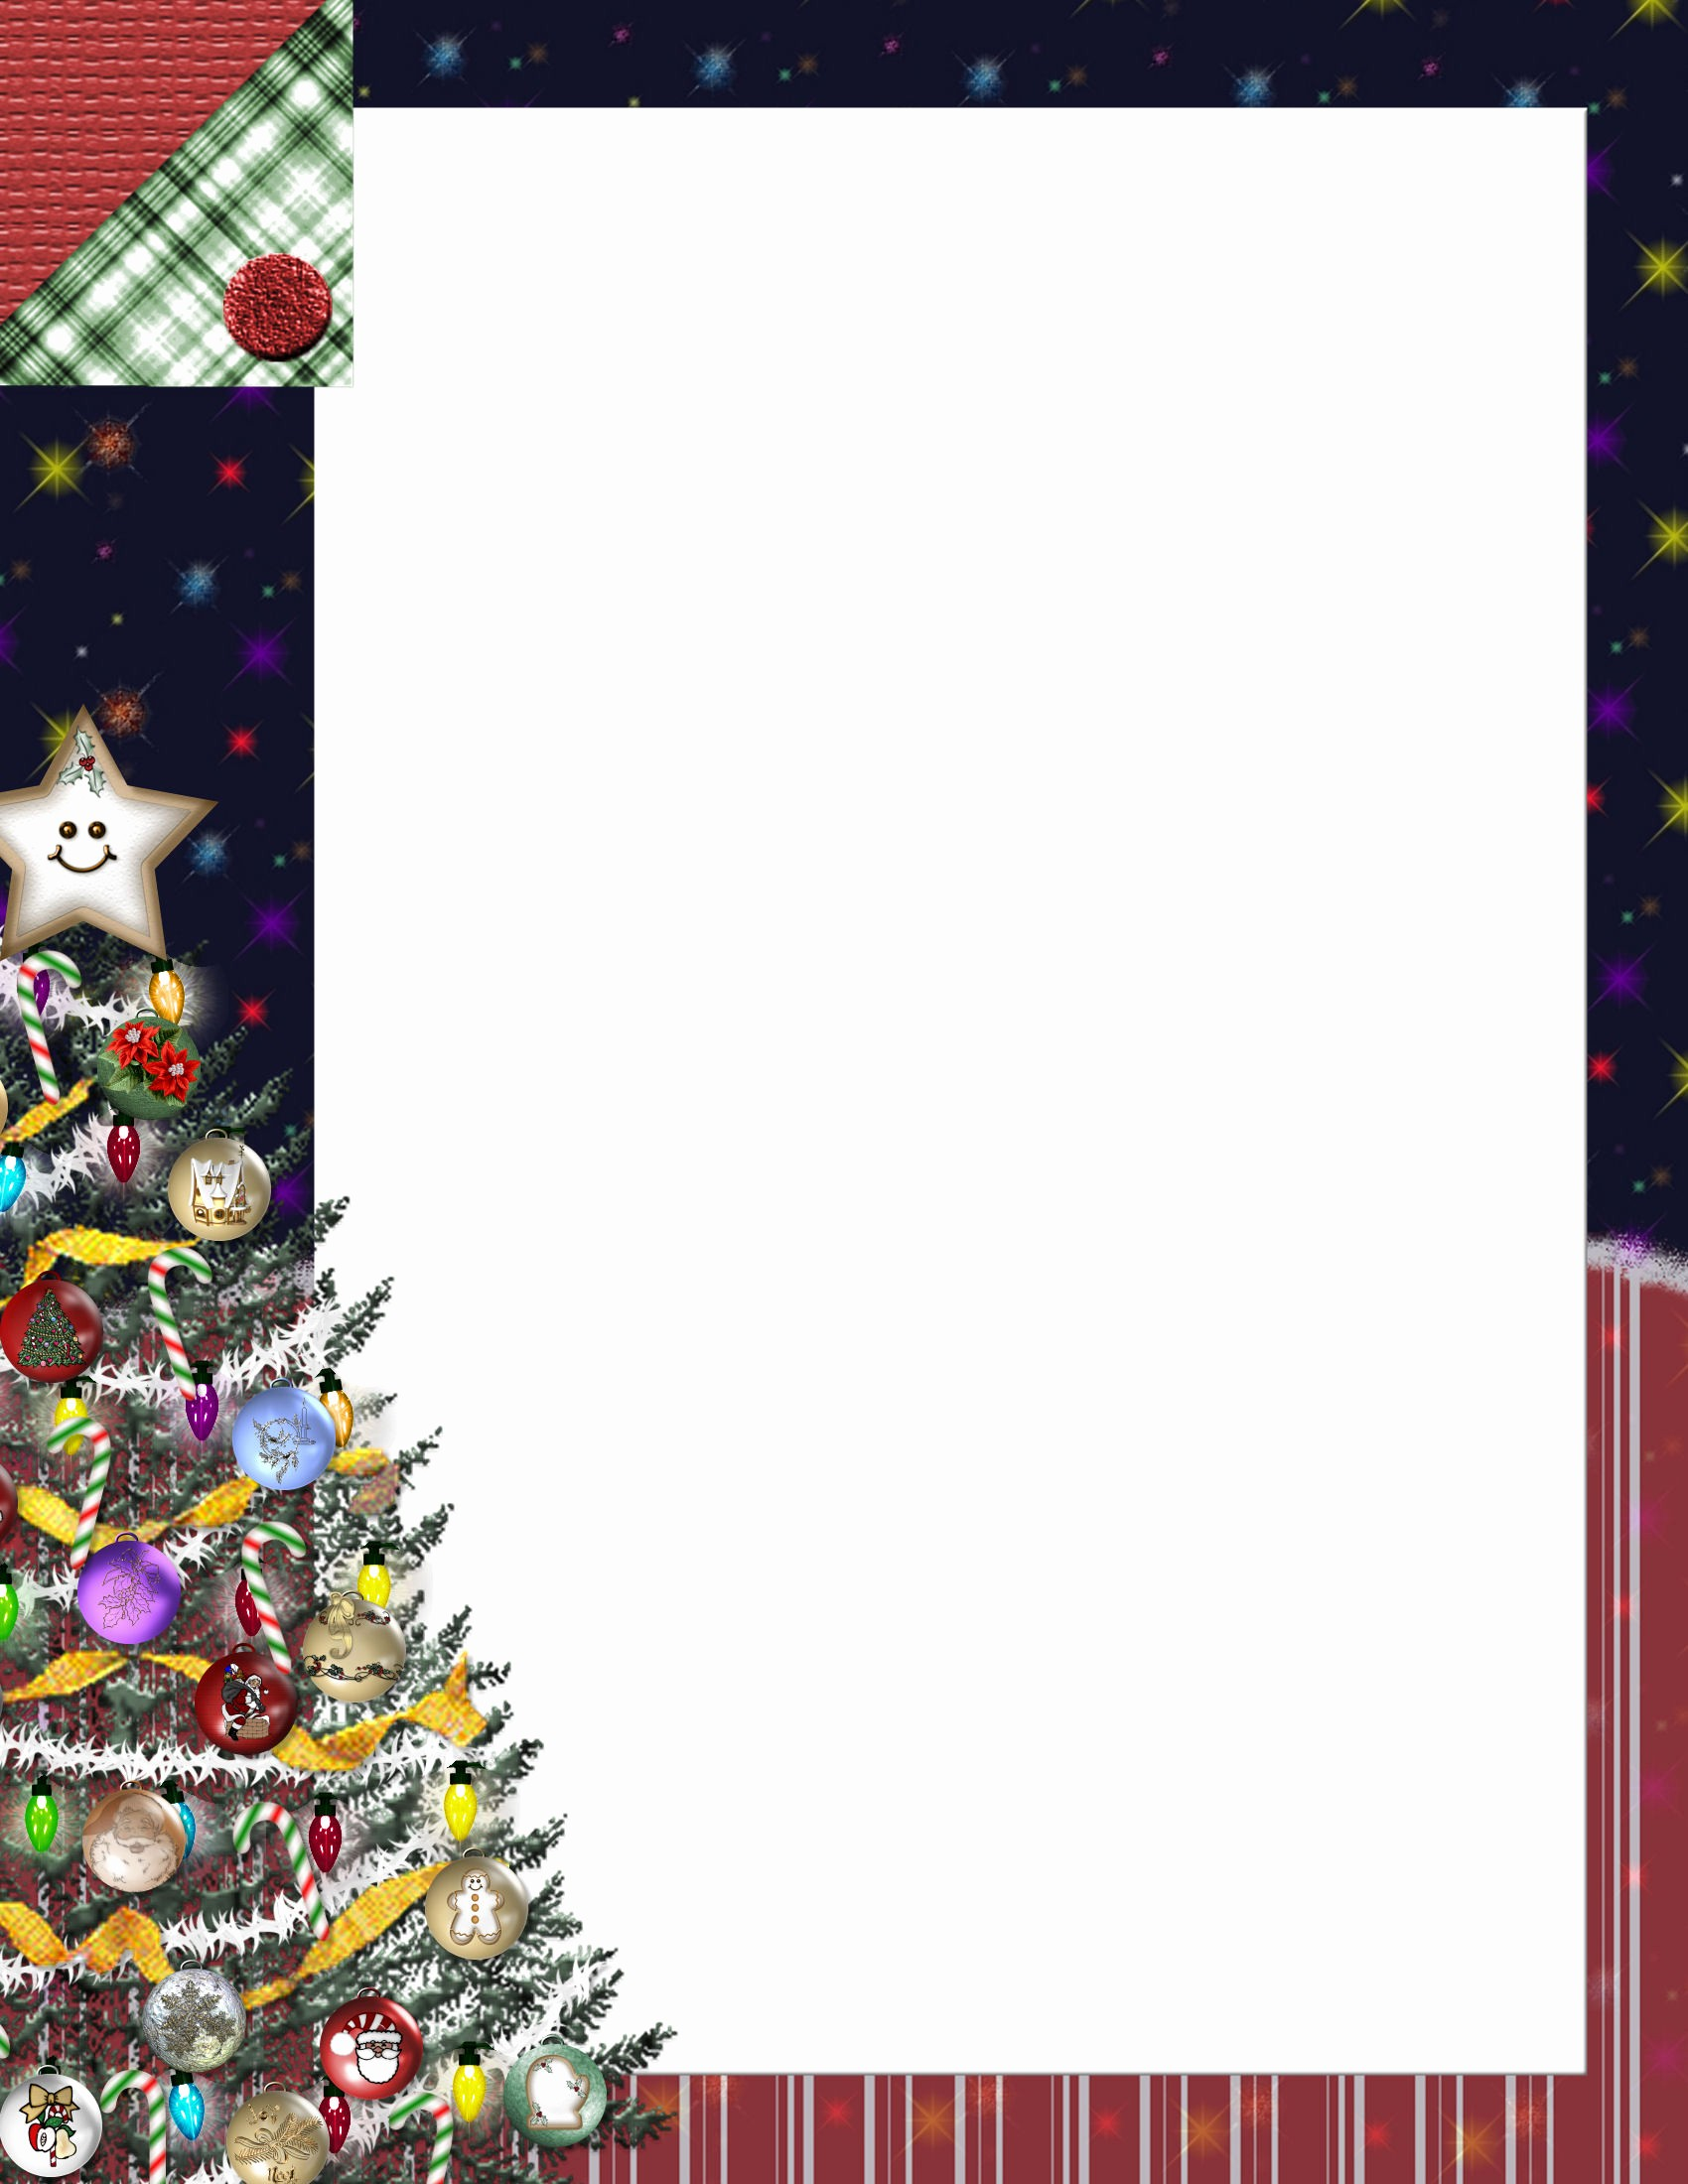 Free Microsoft Word Christmas Template Unique Christmas Template for Word Portablegasgrillweber